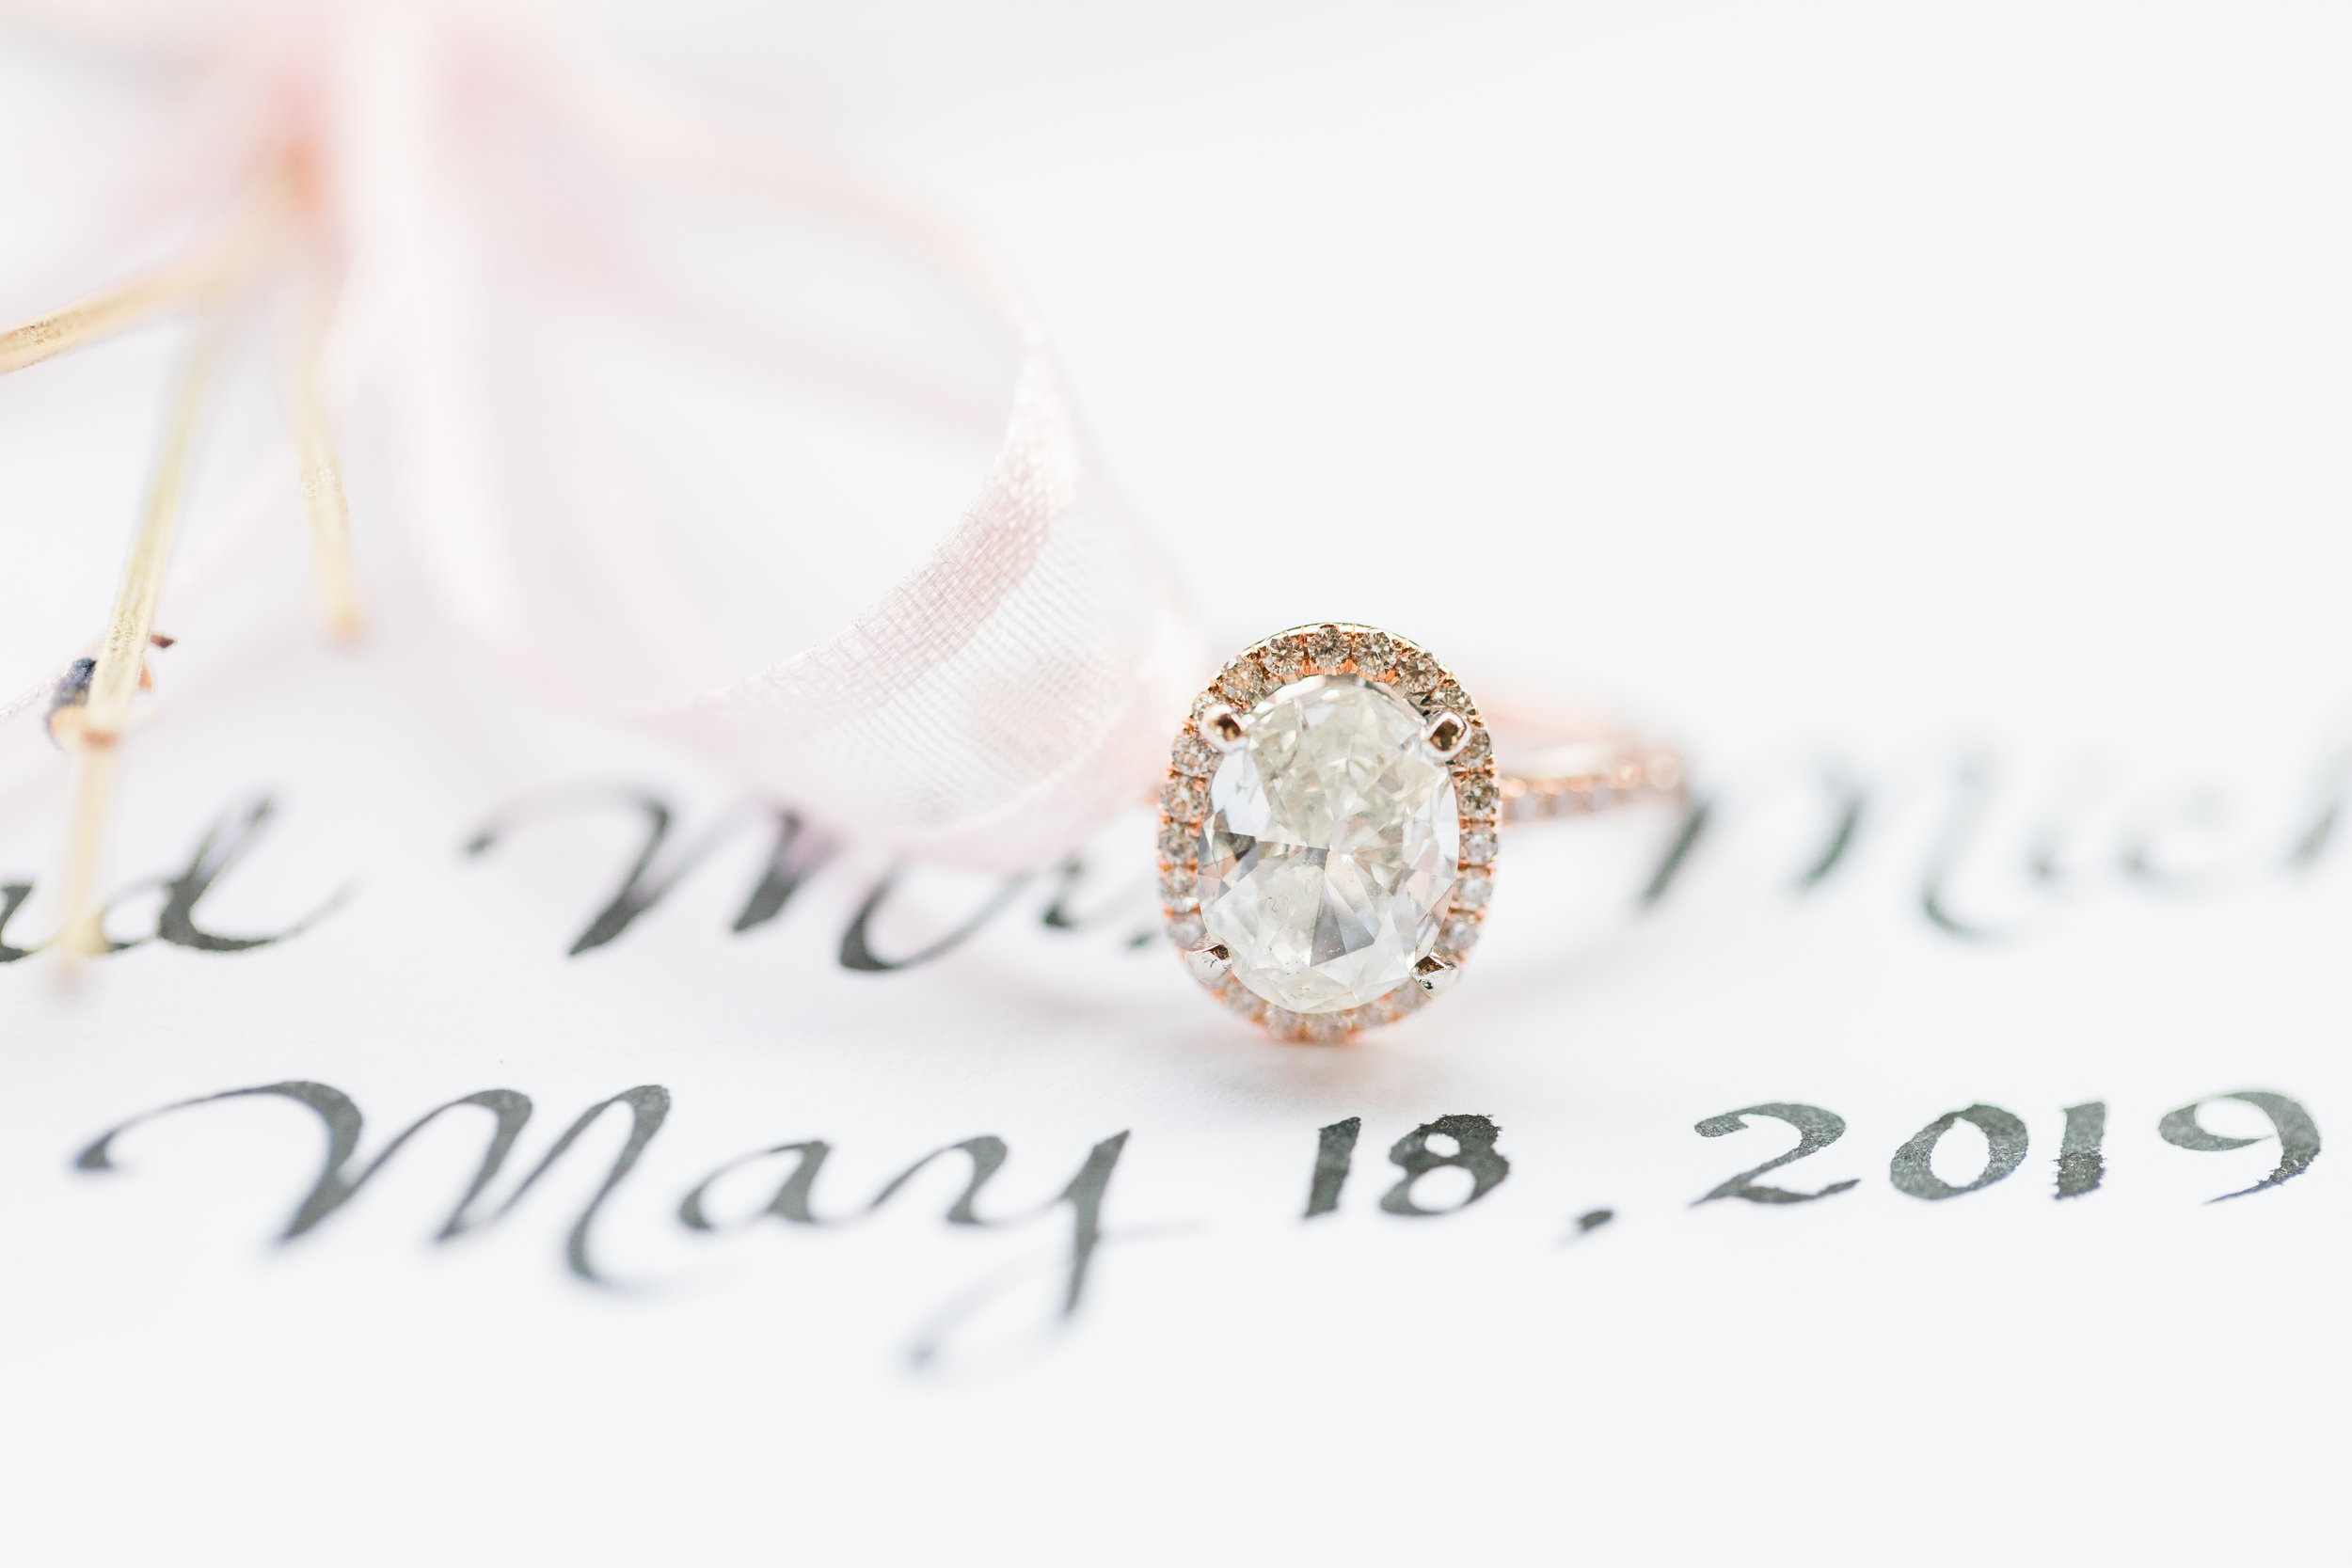 Beautiful styled wedding ring photo from Youngstown wedding